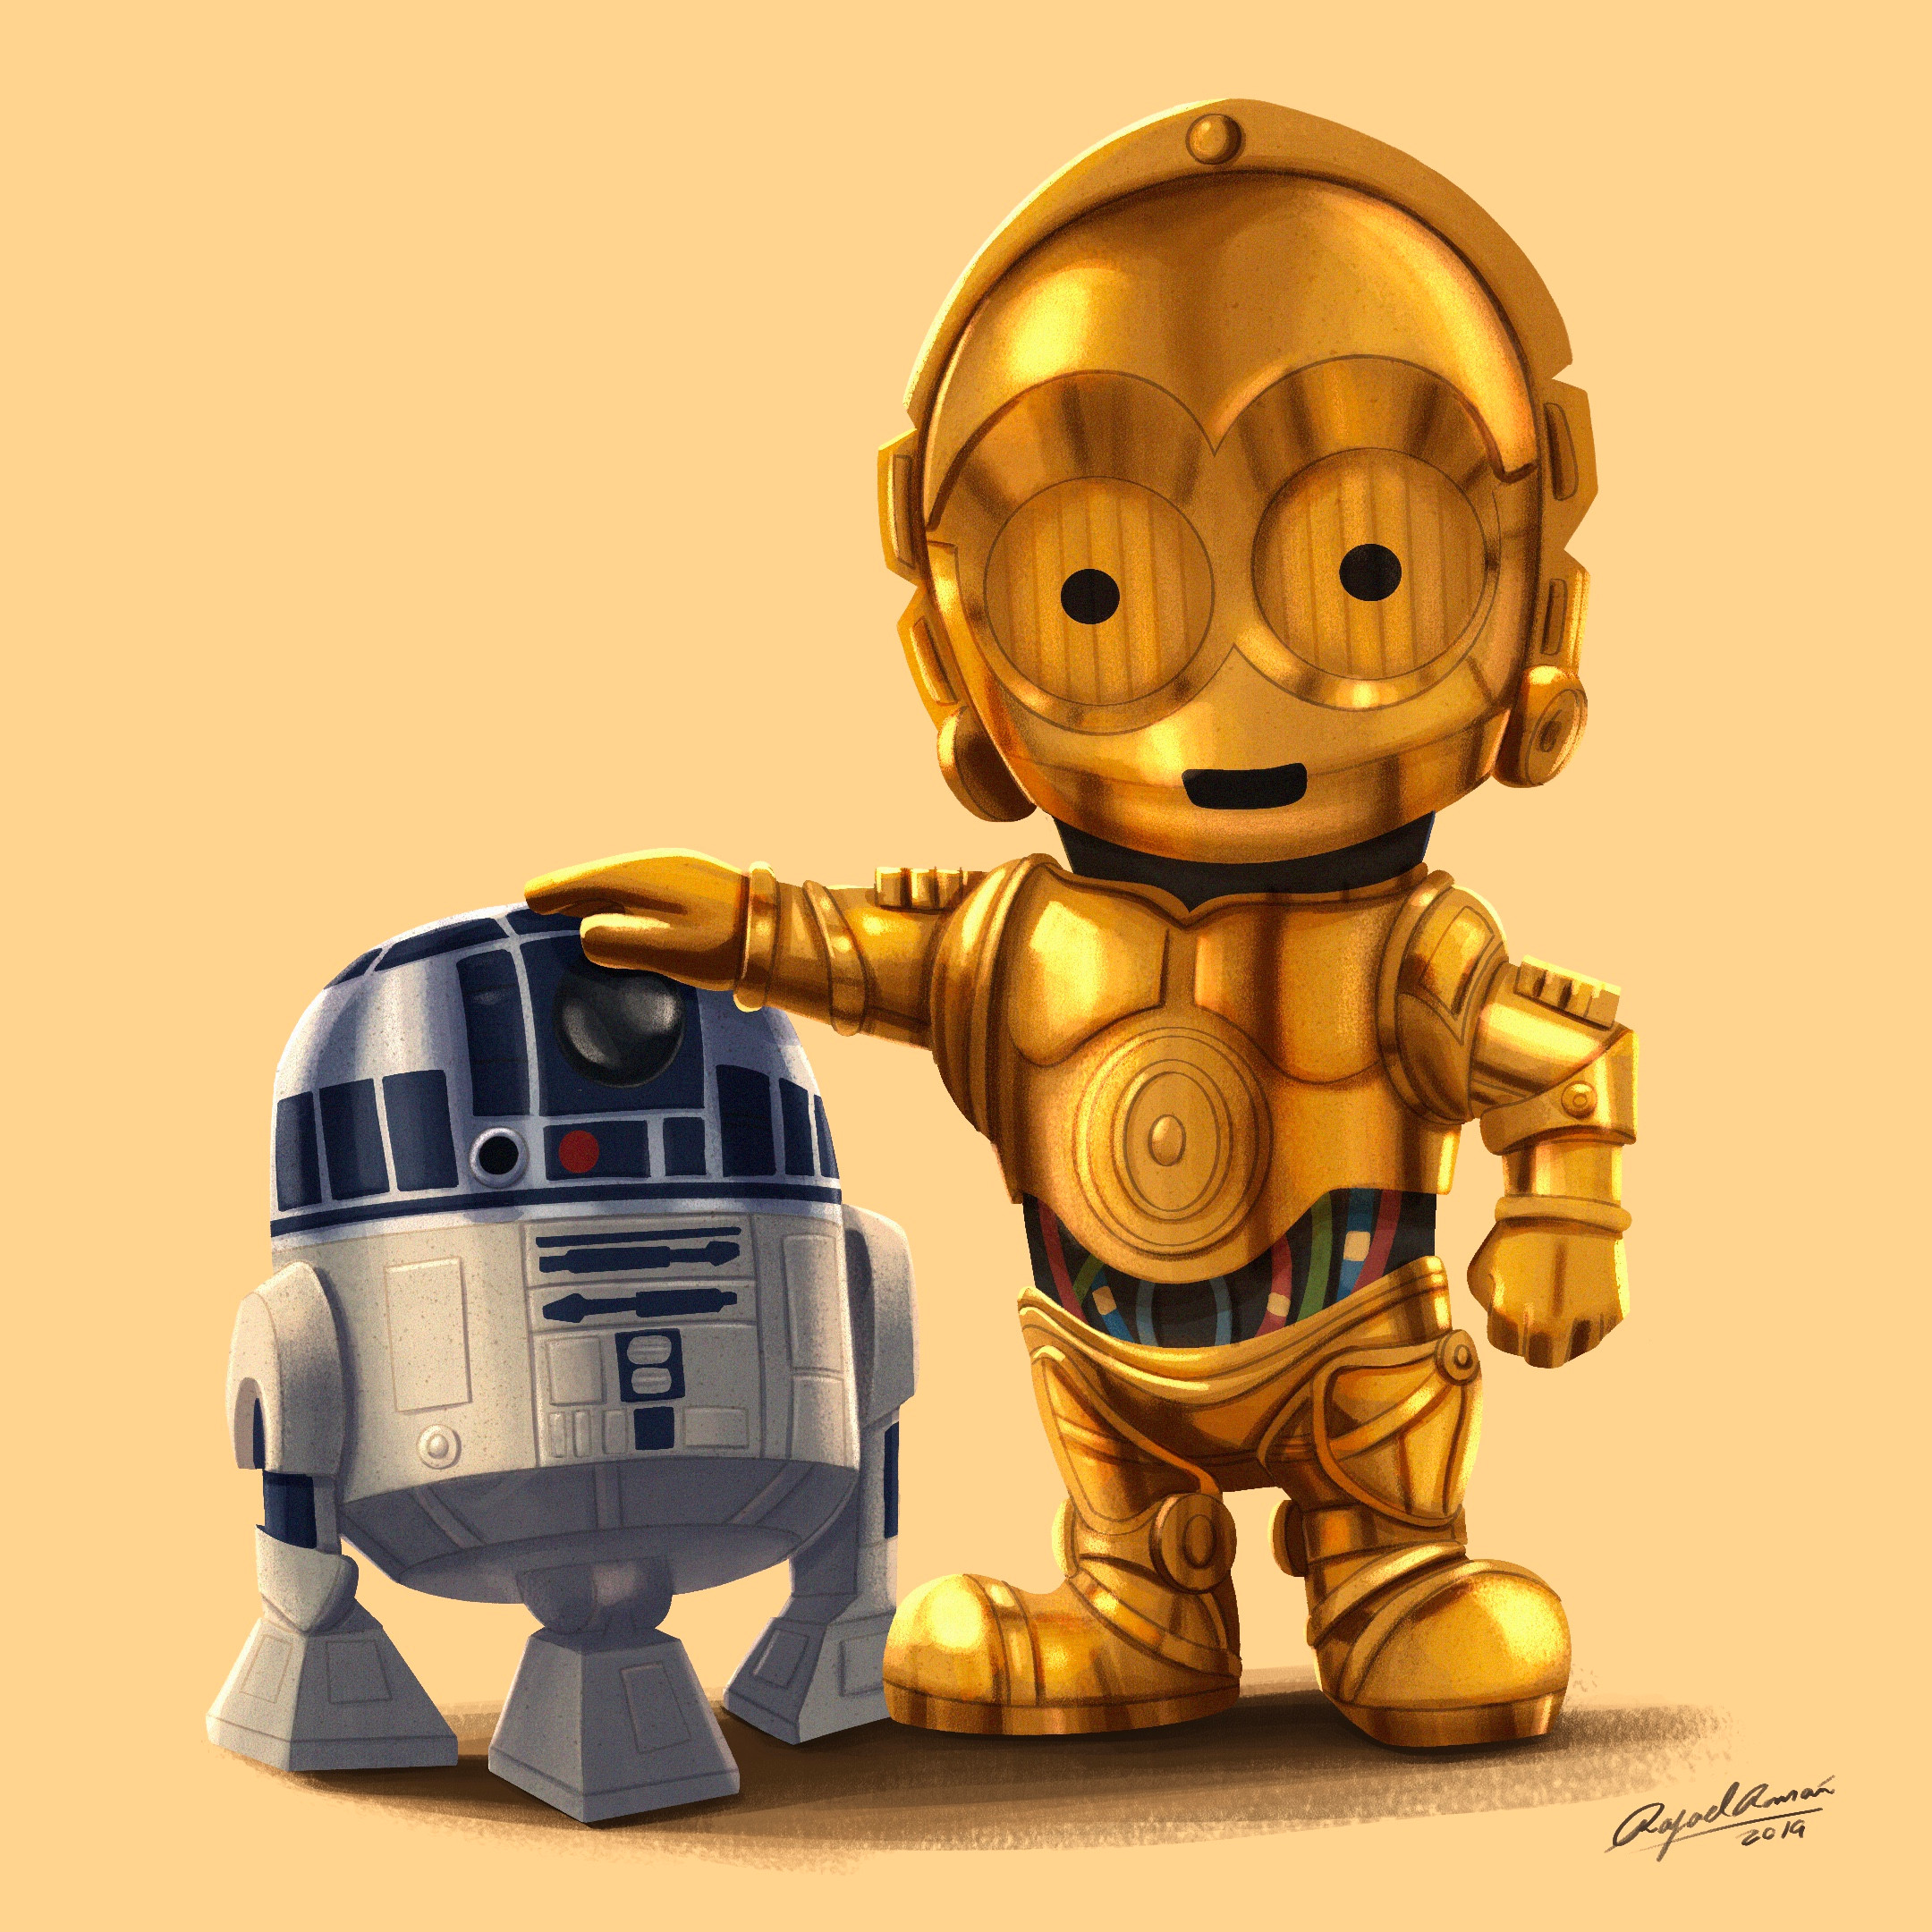 Day 12: Droid!